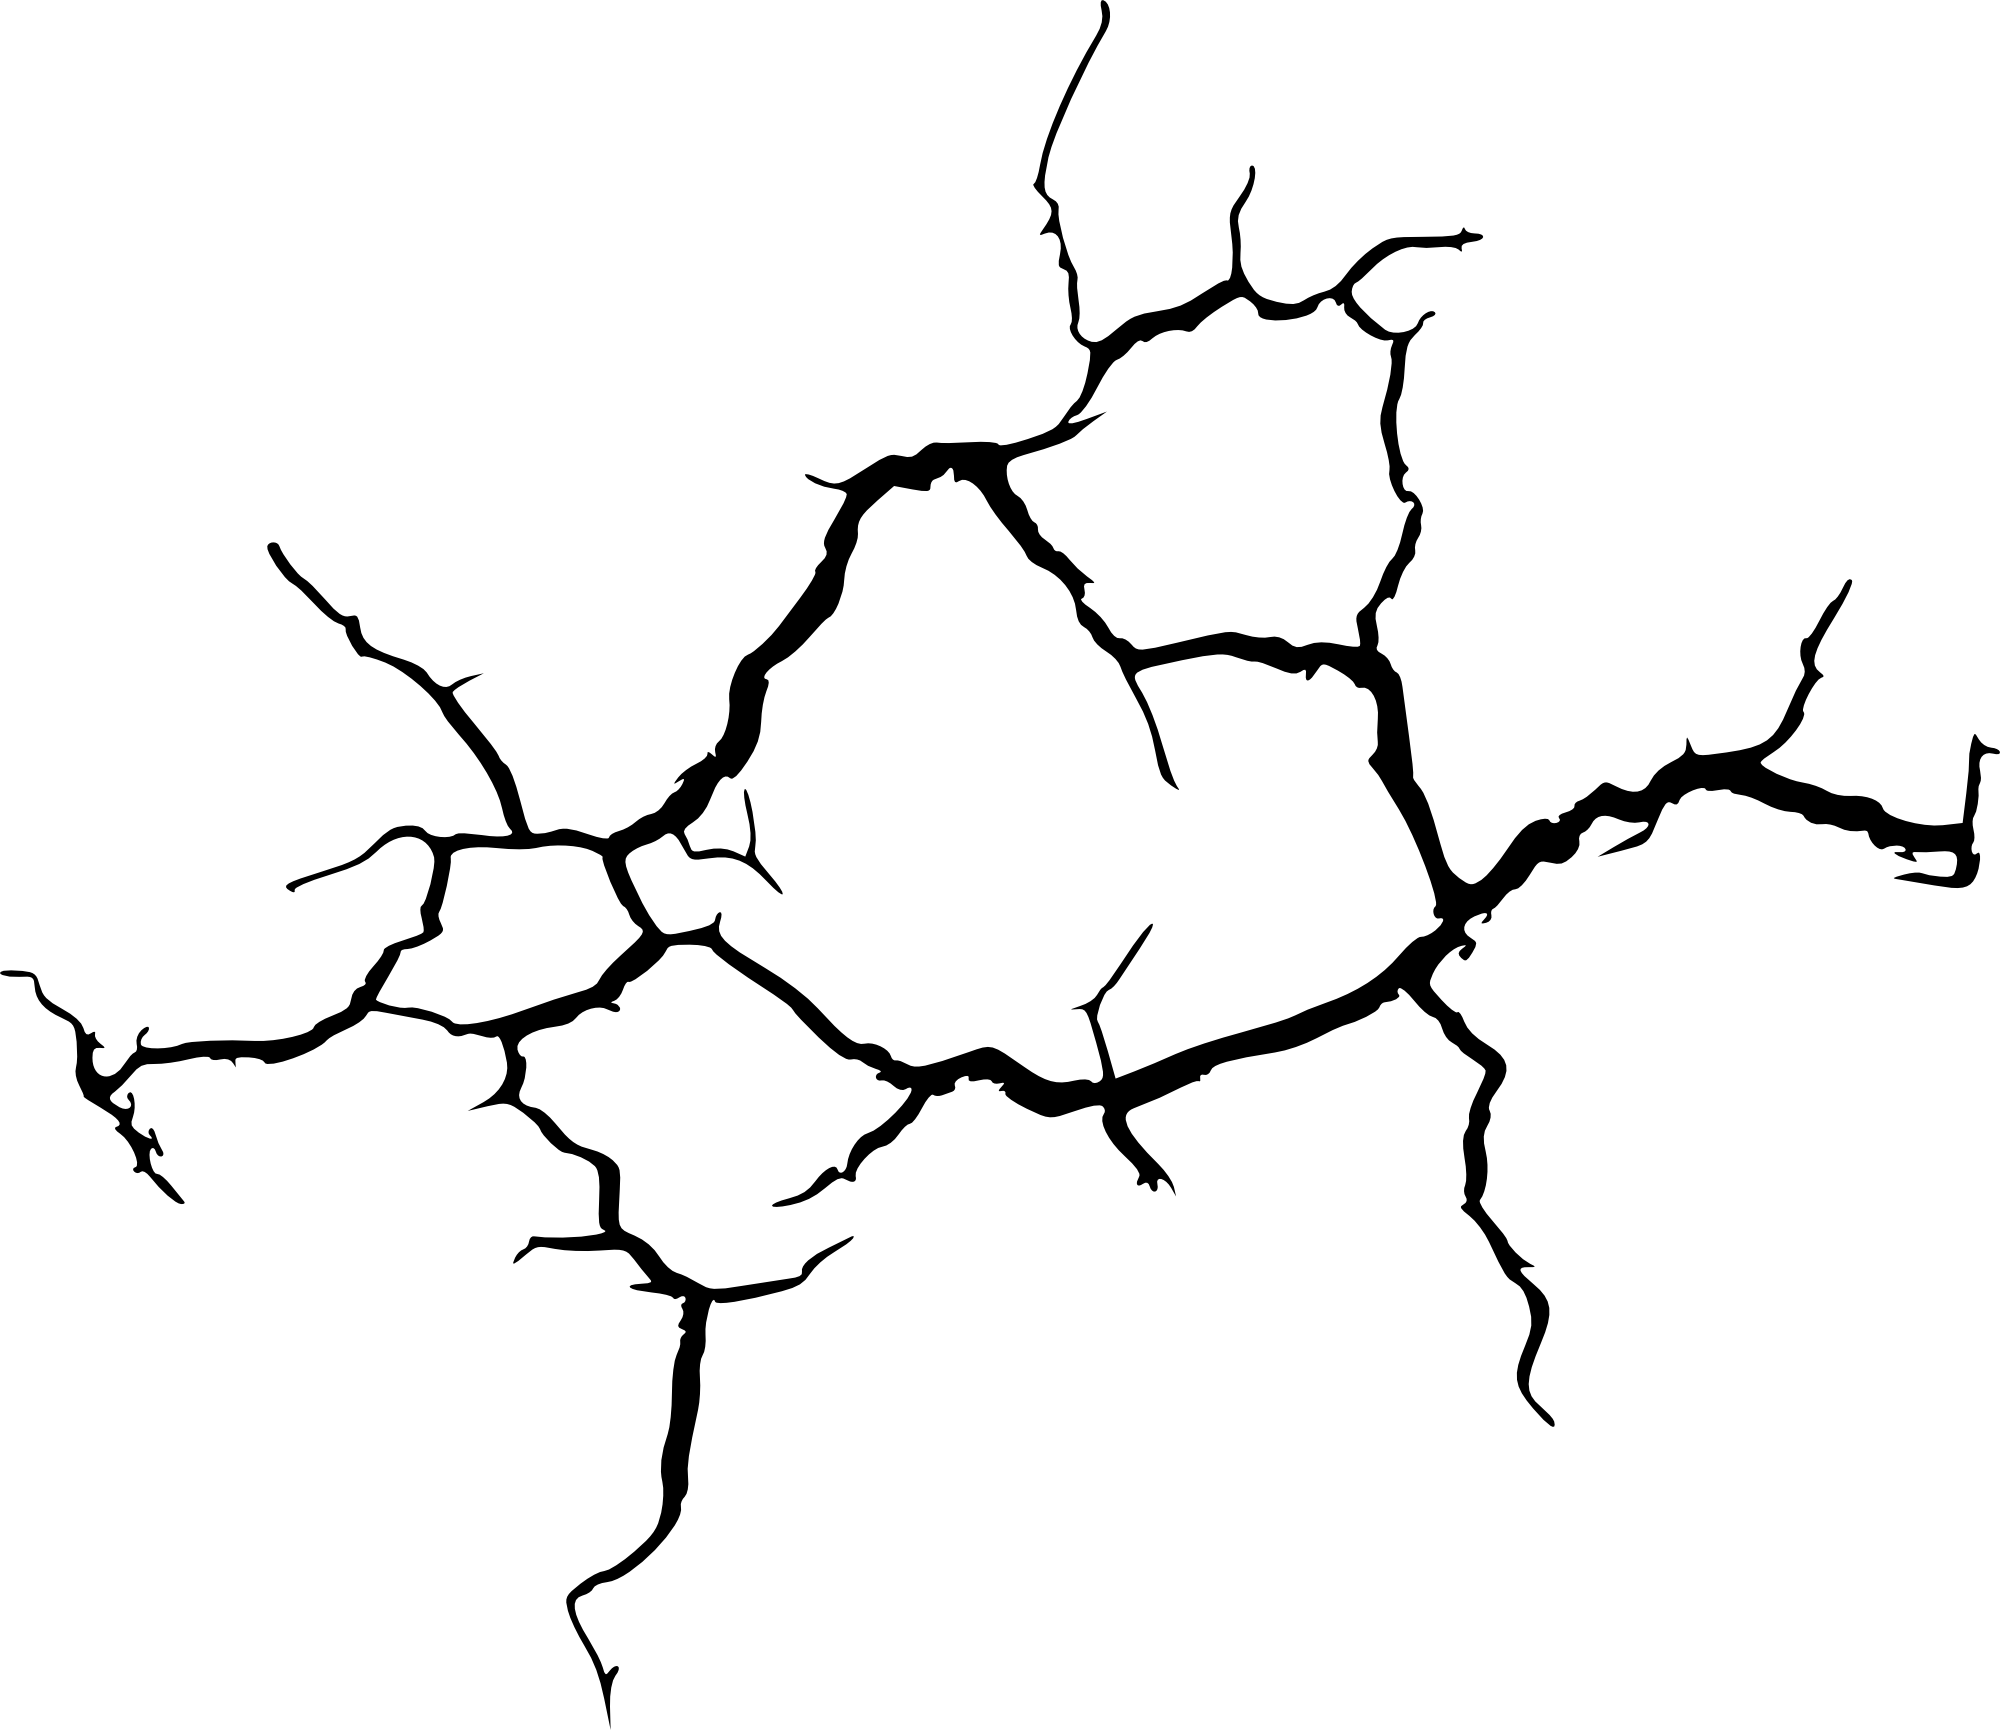 Drawing cracks. Crack png transparent